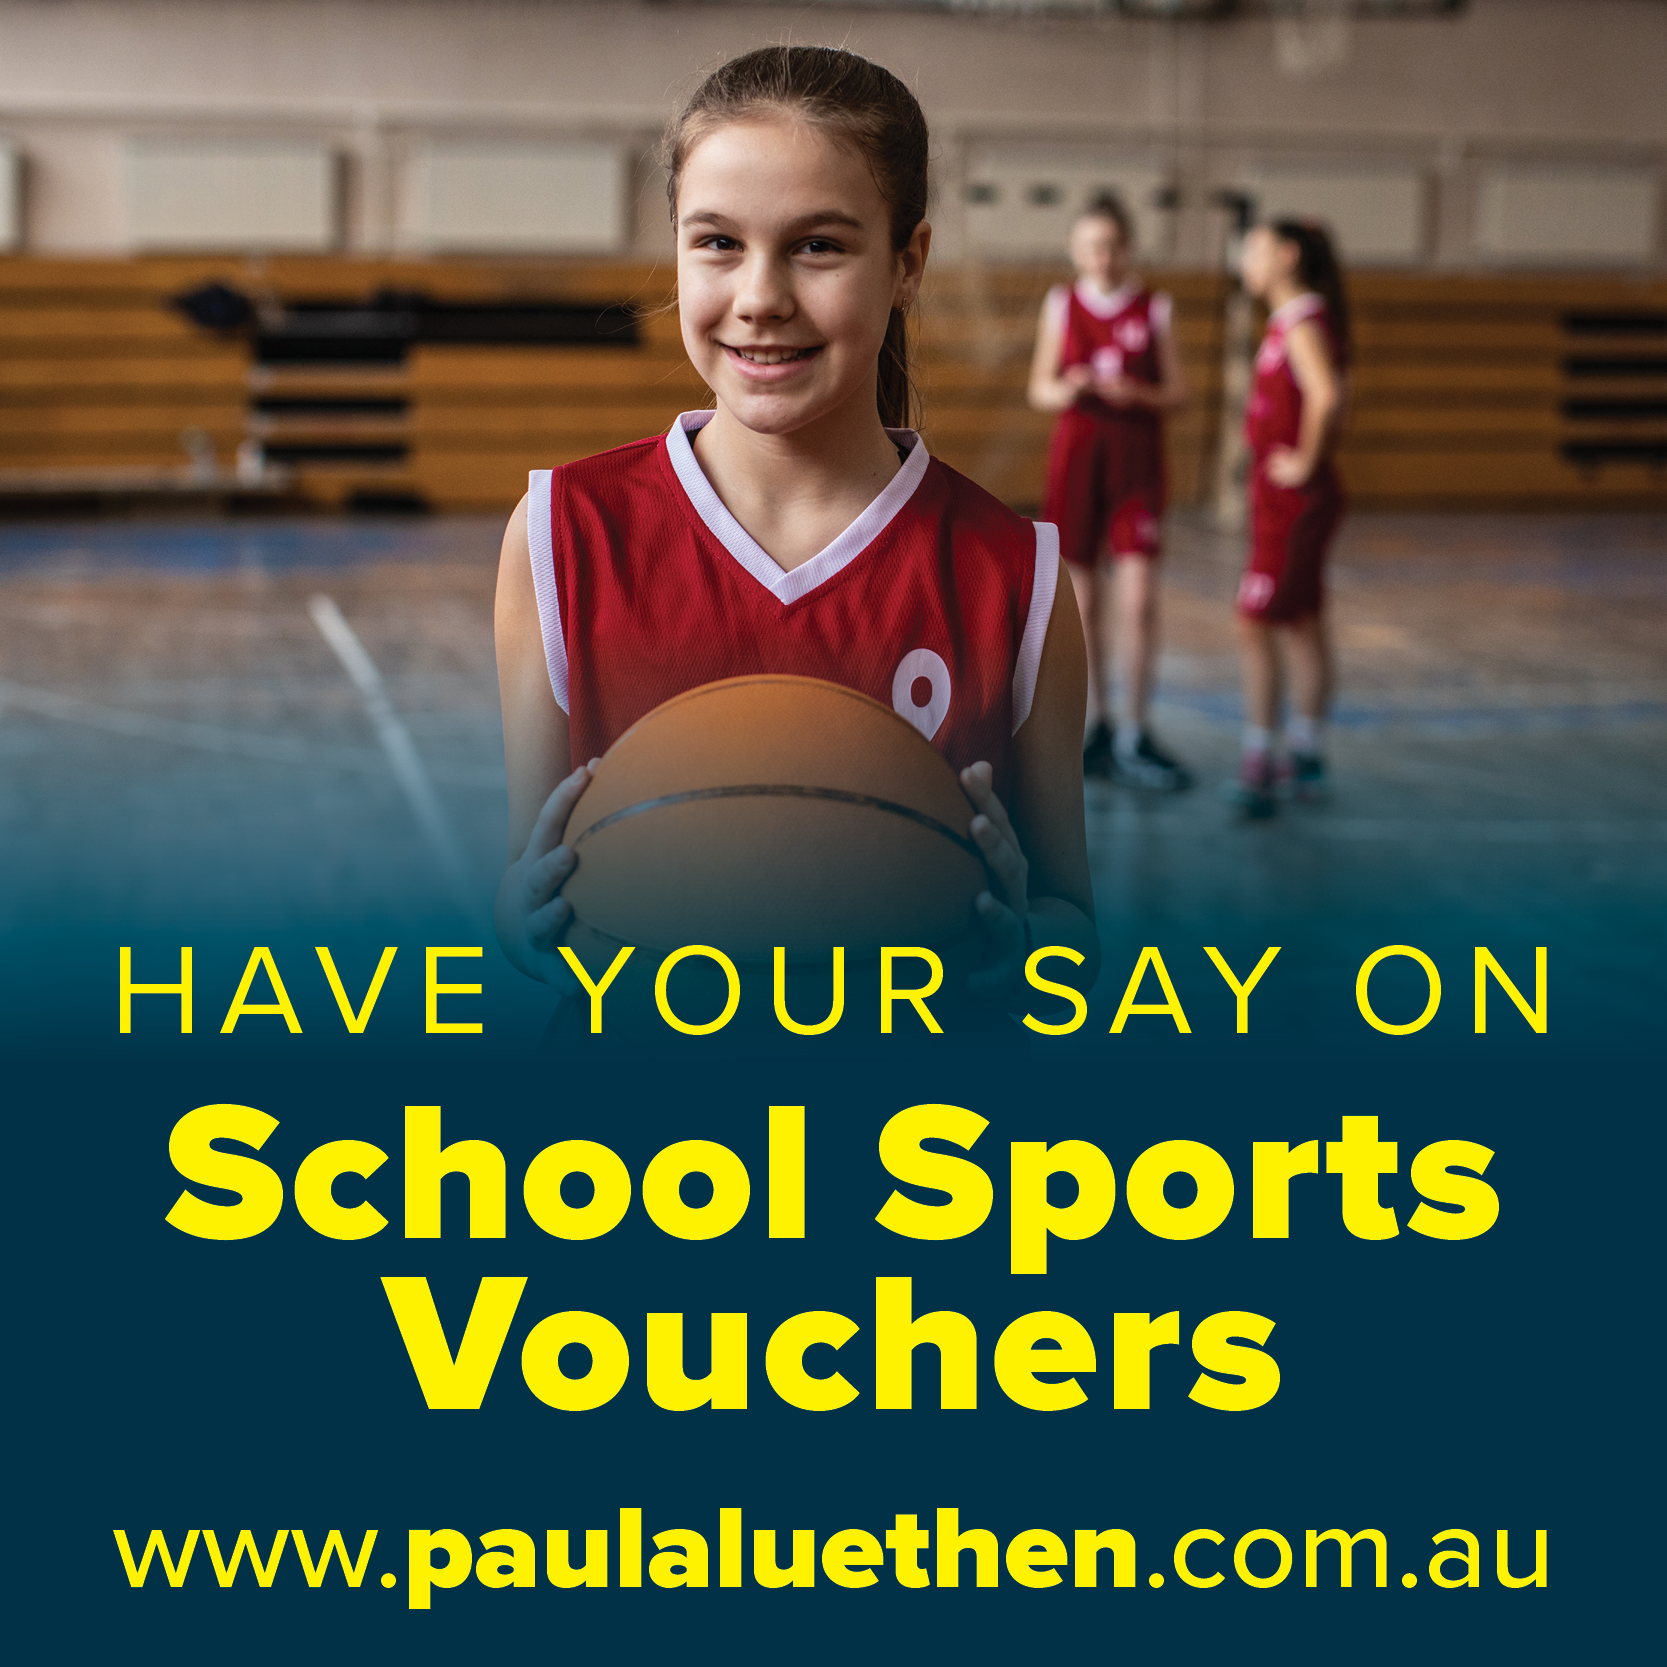 Have Your Say on the Sports Vouchers Program